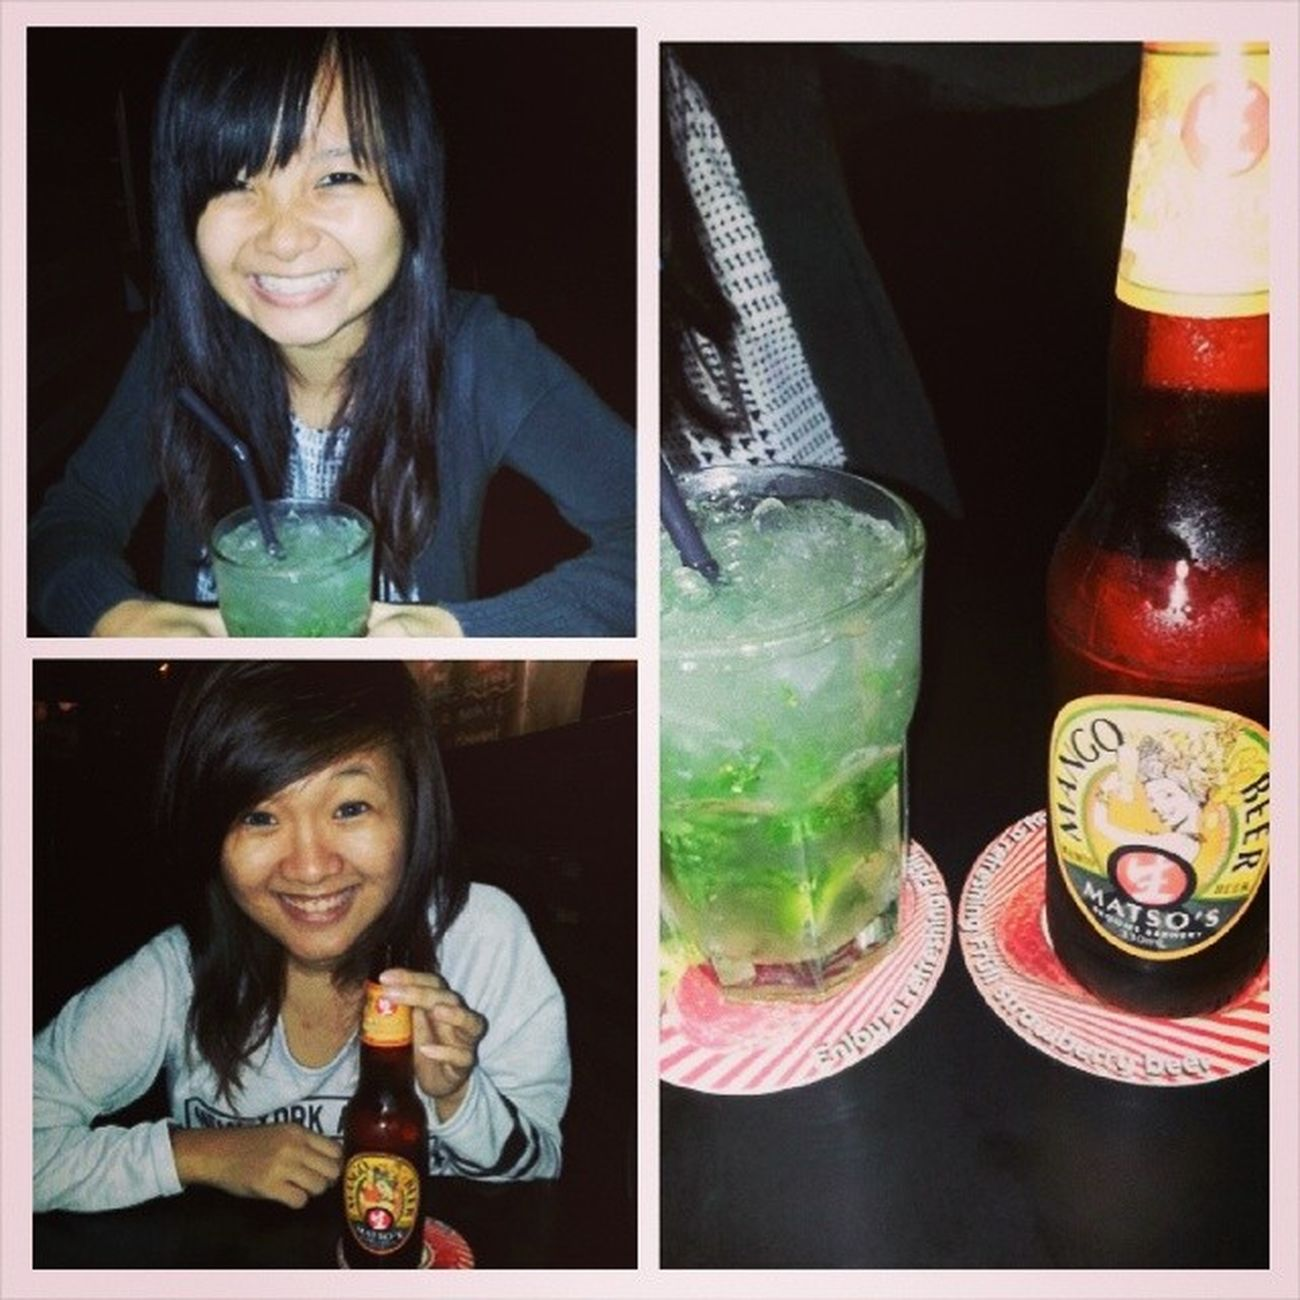 Chillax with bestie👍👍👍 Ended my night with bestie at beer market. The service and live band was really good! The live band (Lemon Jelly Pop) has great vocals 👍 . And the staff over there recommended me a good drink which is their mojito (I think it spells like this) , really like the peppermint taste which is totally good for the sick me HAHA, whike bestie ordered mango beer. Ps: Hope you enjoyed the evening/night with me hehe! Post birthday outing with bestie. Drinkdrinkdrink Beermarket Chillax Night mojito mangobeer greatliveband lemonjellypop wednesdaynight bestservice bestie loves